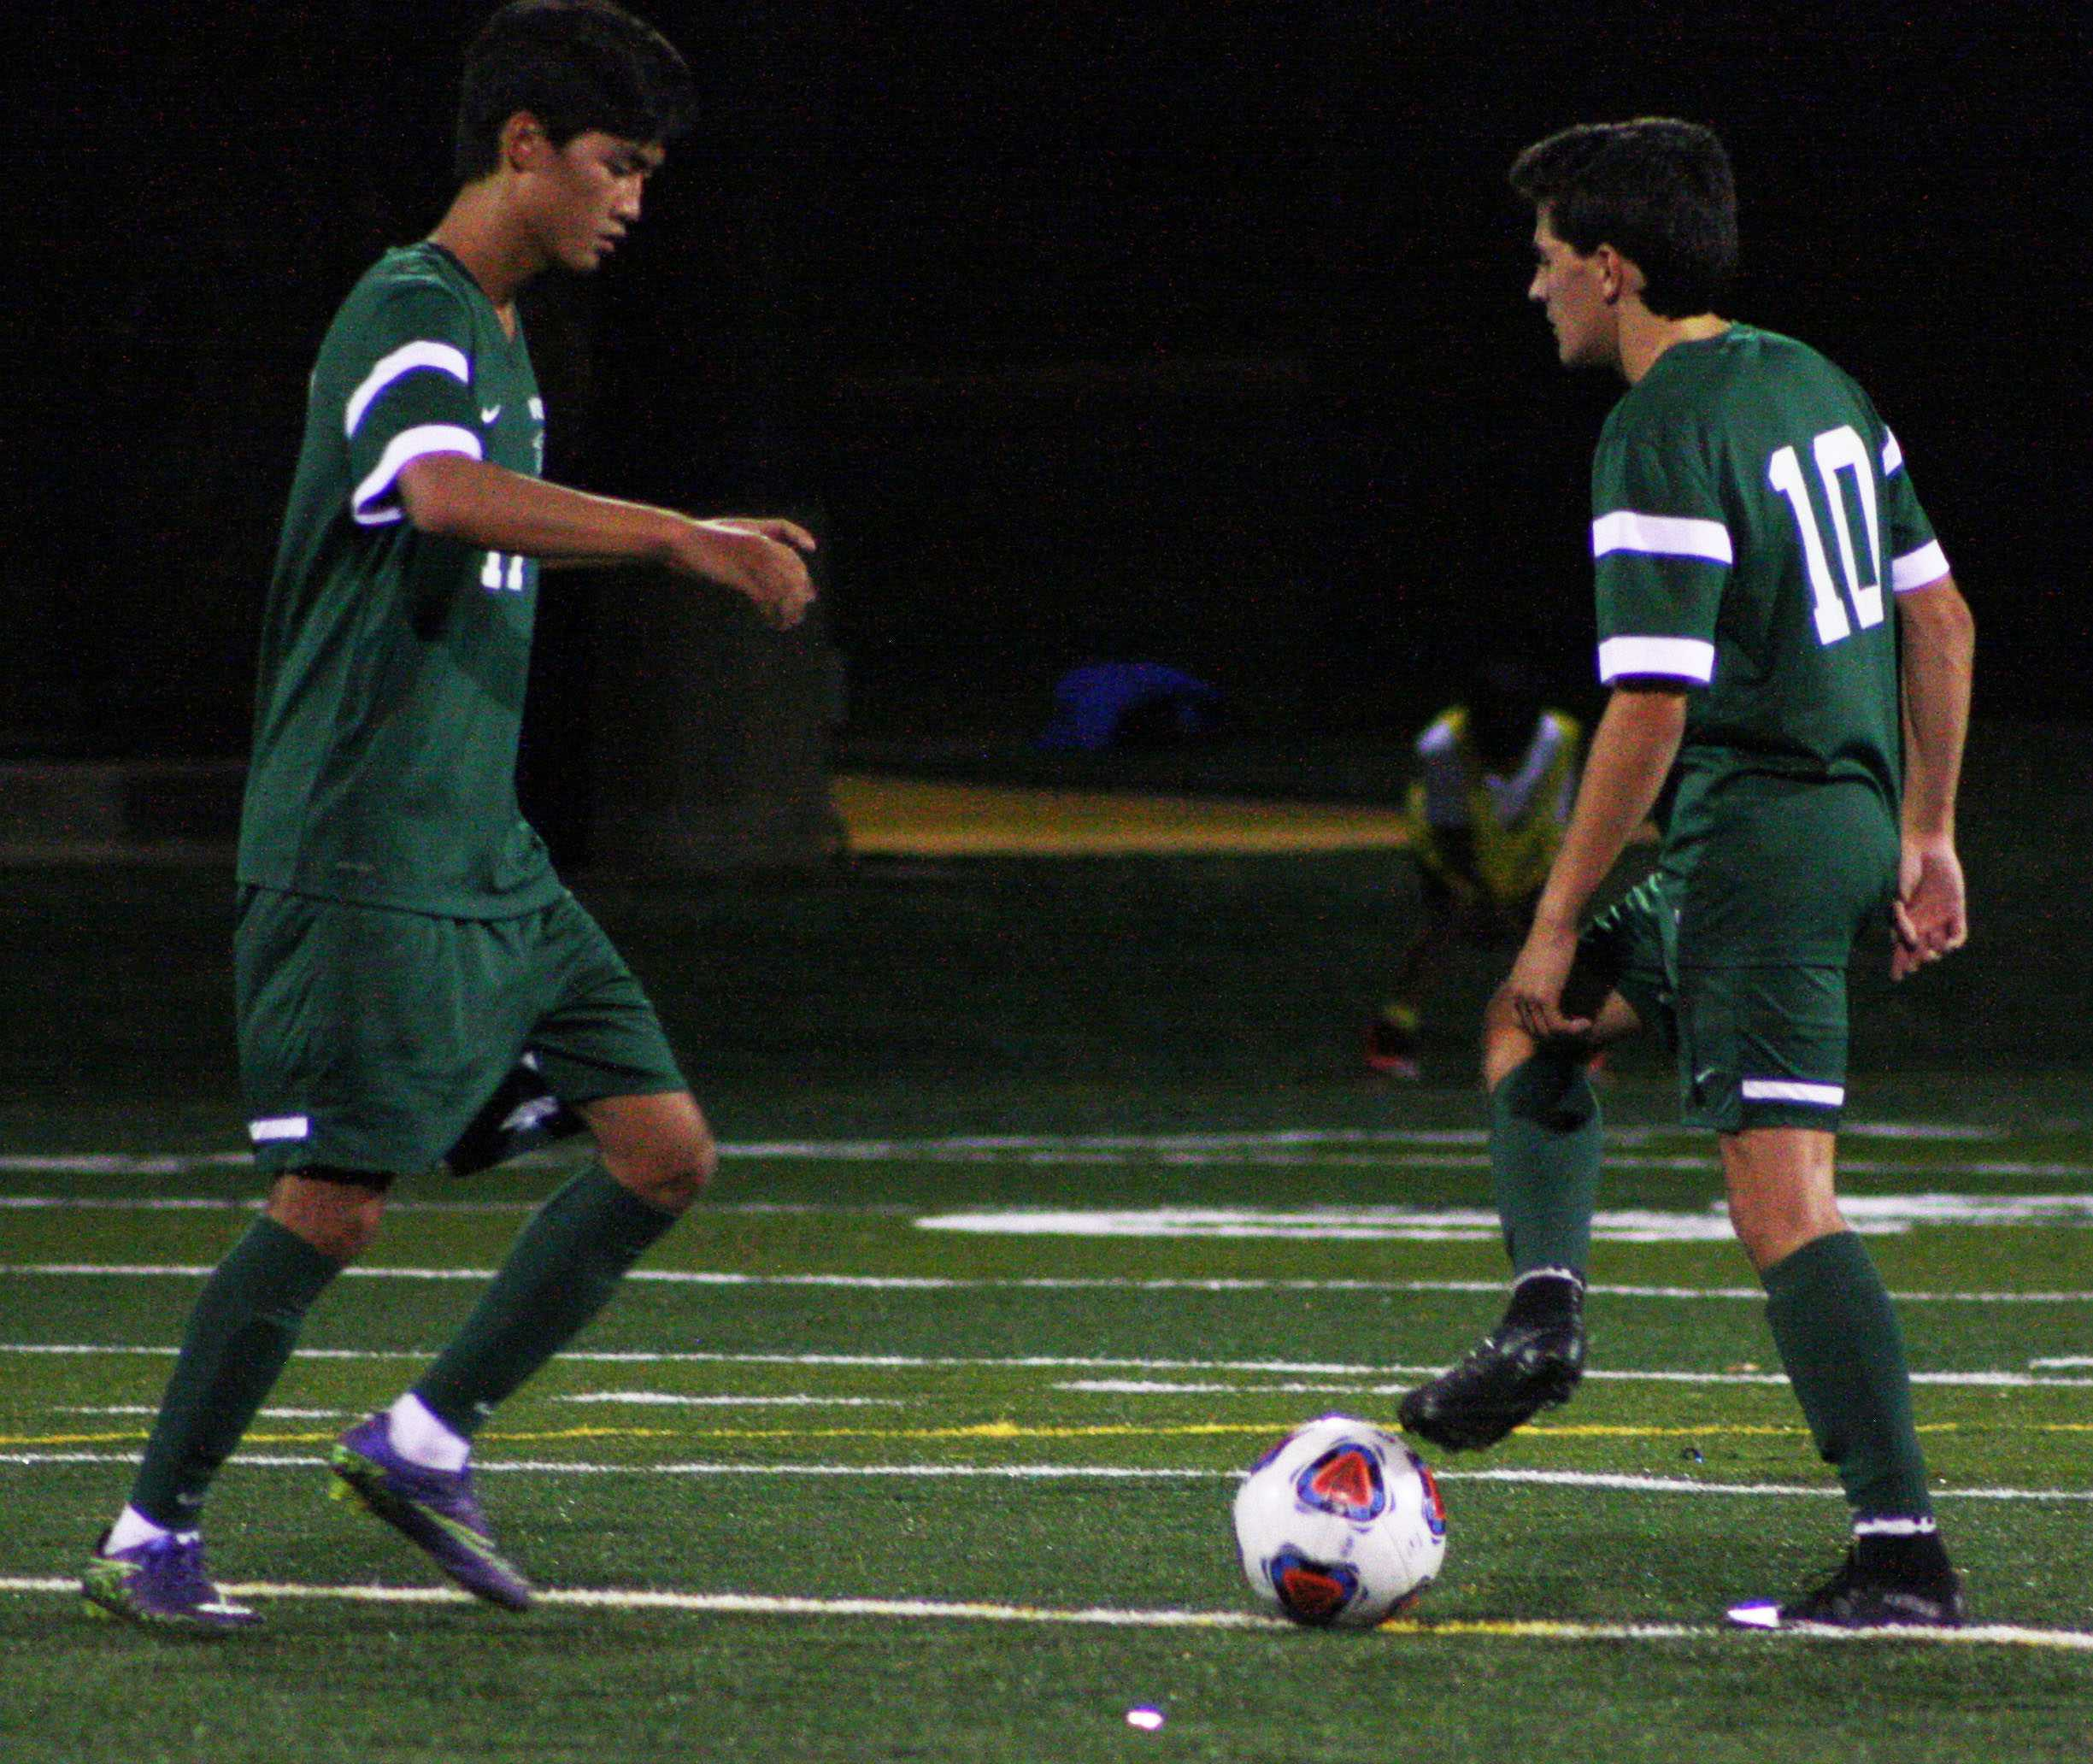 PHOTOS: Men's Soccer vs. Rock Canyon